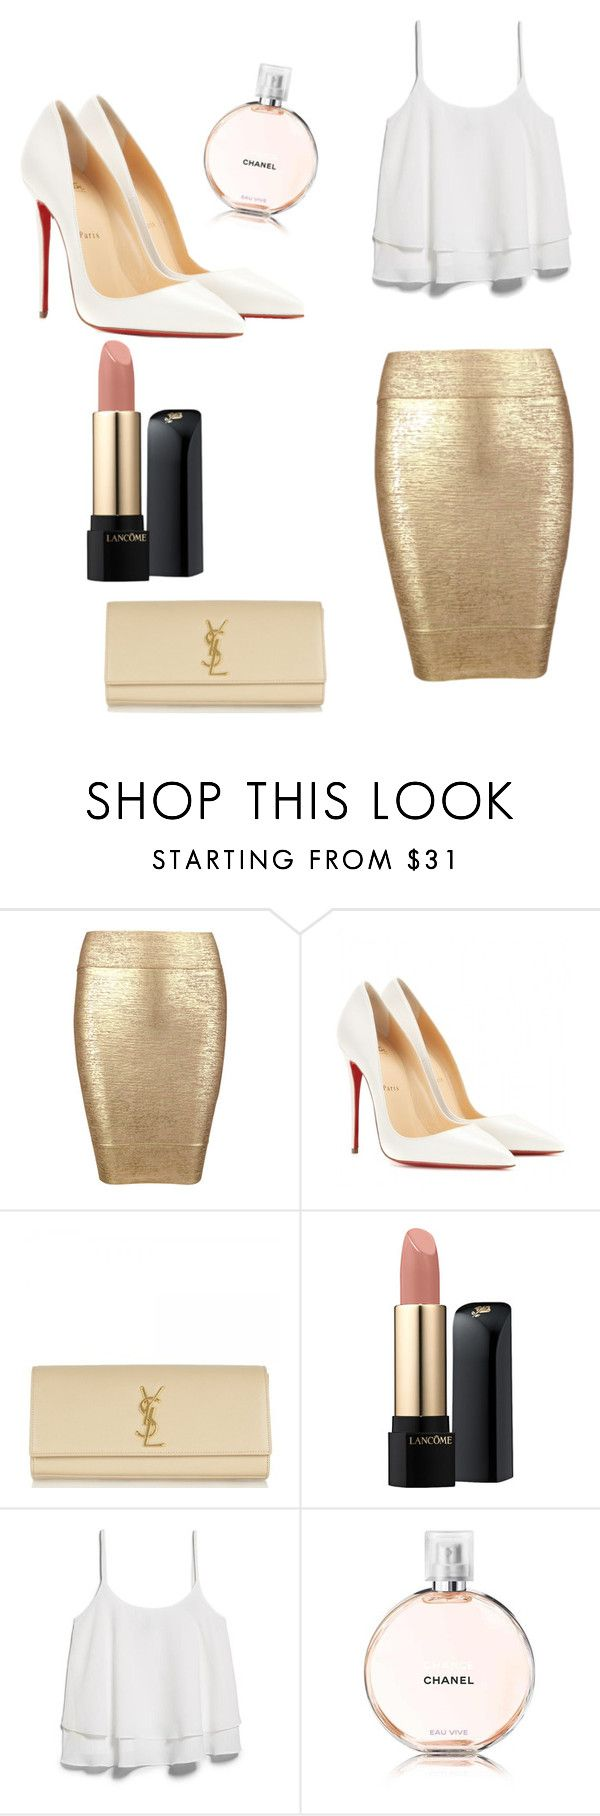 """""""Untitled #4"""" by queenboss01 ❤ liked on Polyvore featuring Posh Girl, Christian Louboutin, Yves Saint Laurent, Lancôme, MANGO, Chanel, women's clothing, women's fashion, women and female"""